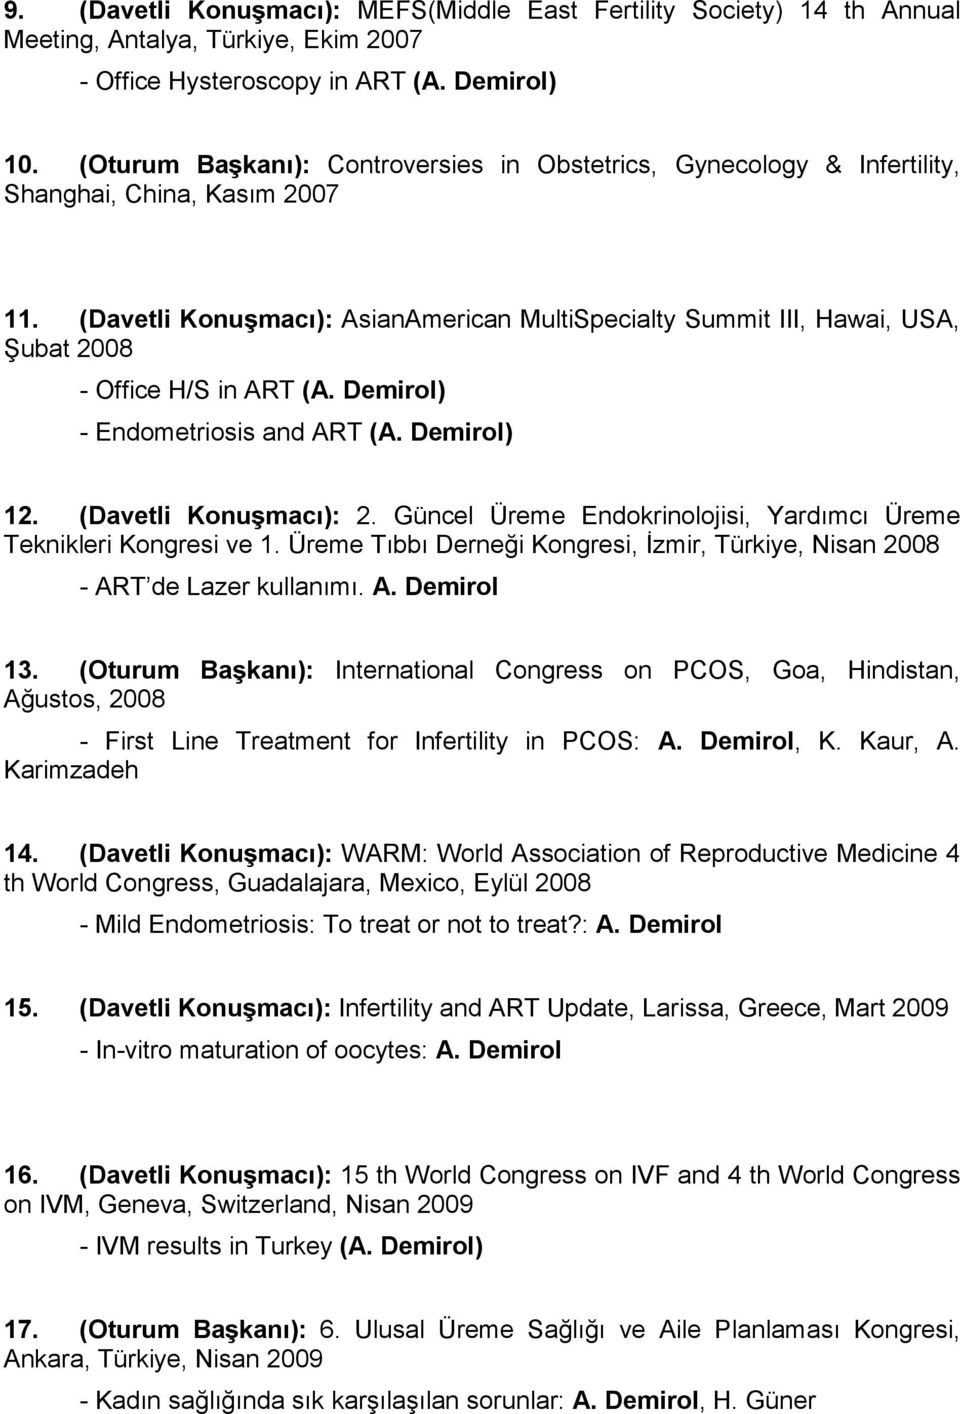 (Davetli Konuşmacı): AsianAmerican MultiSpecialty Summit III, Hawai, USA, Şubat 2008 - Office H/S in ART (A. Demirol) - Endometriosis and ART (A. Demirol) 12. (Davetli Konuşmacı): 2.